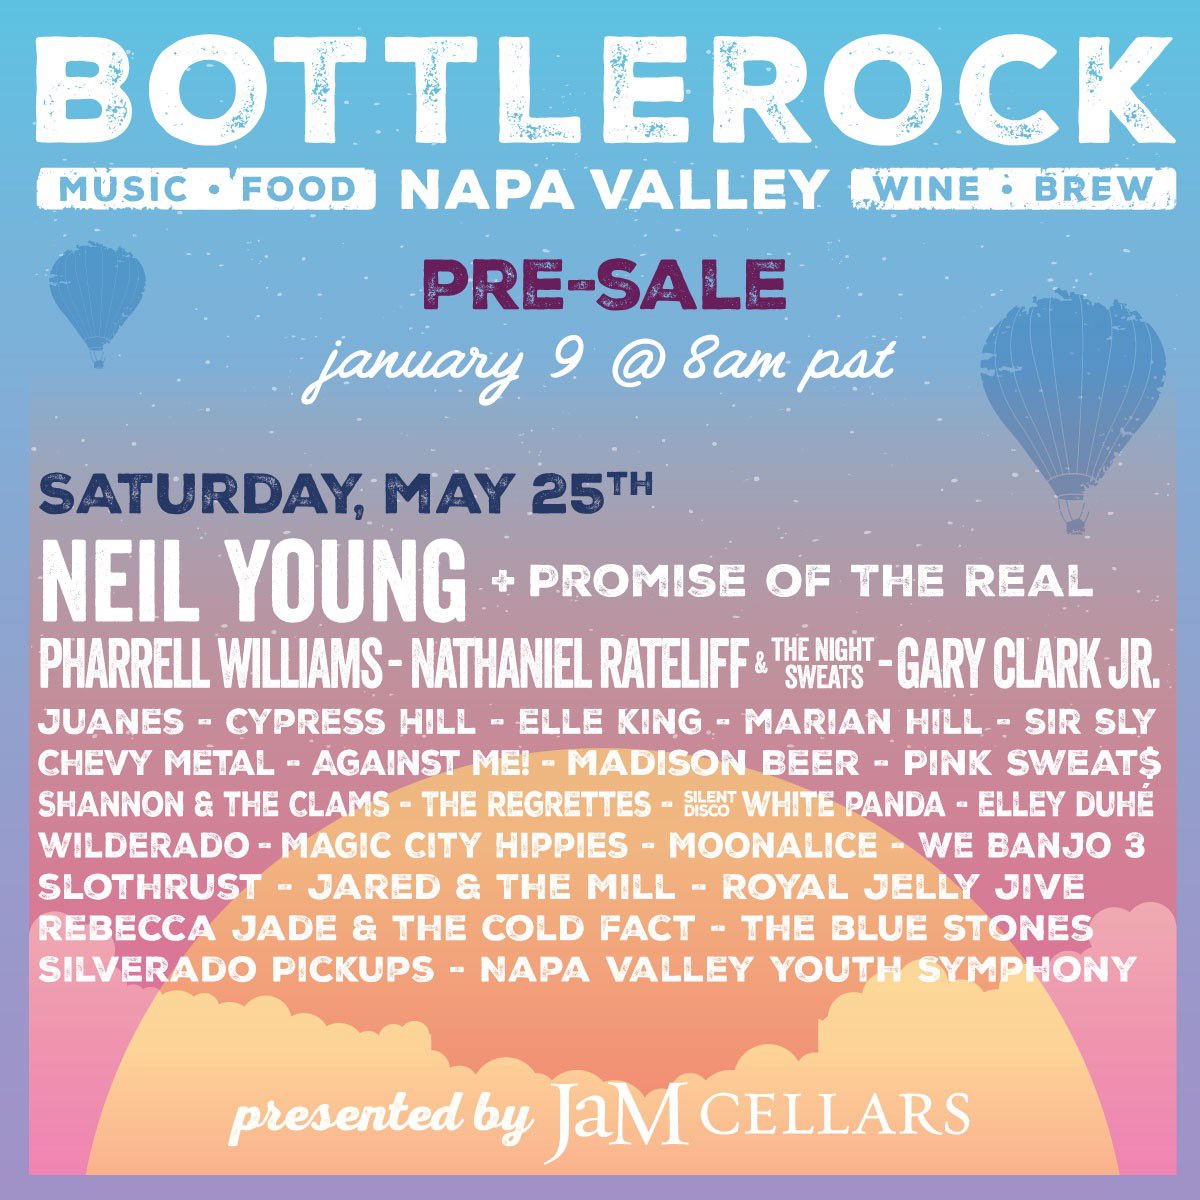 I'll be performing at @BottleRockNapa Saturday May 25th. Be the first to get single day passes here: https://t.co/0fVsF18bpr Enter code: PharrellWilliams